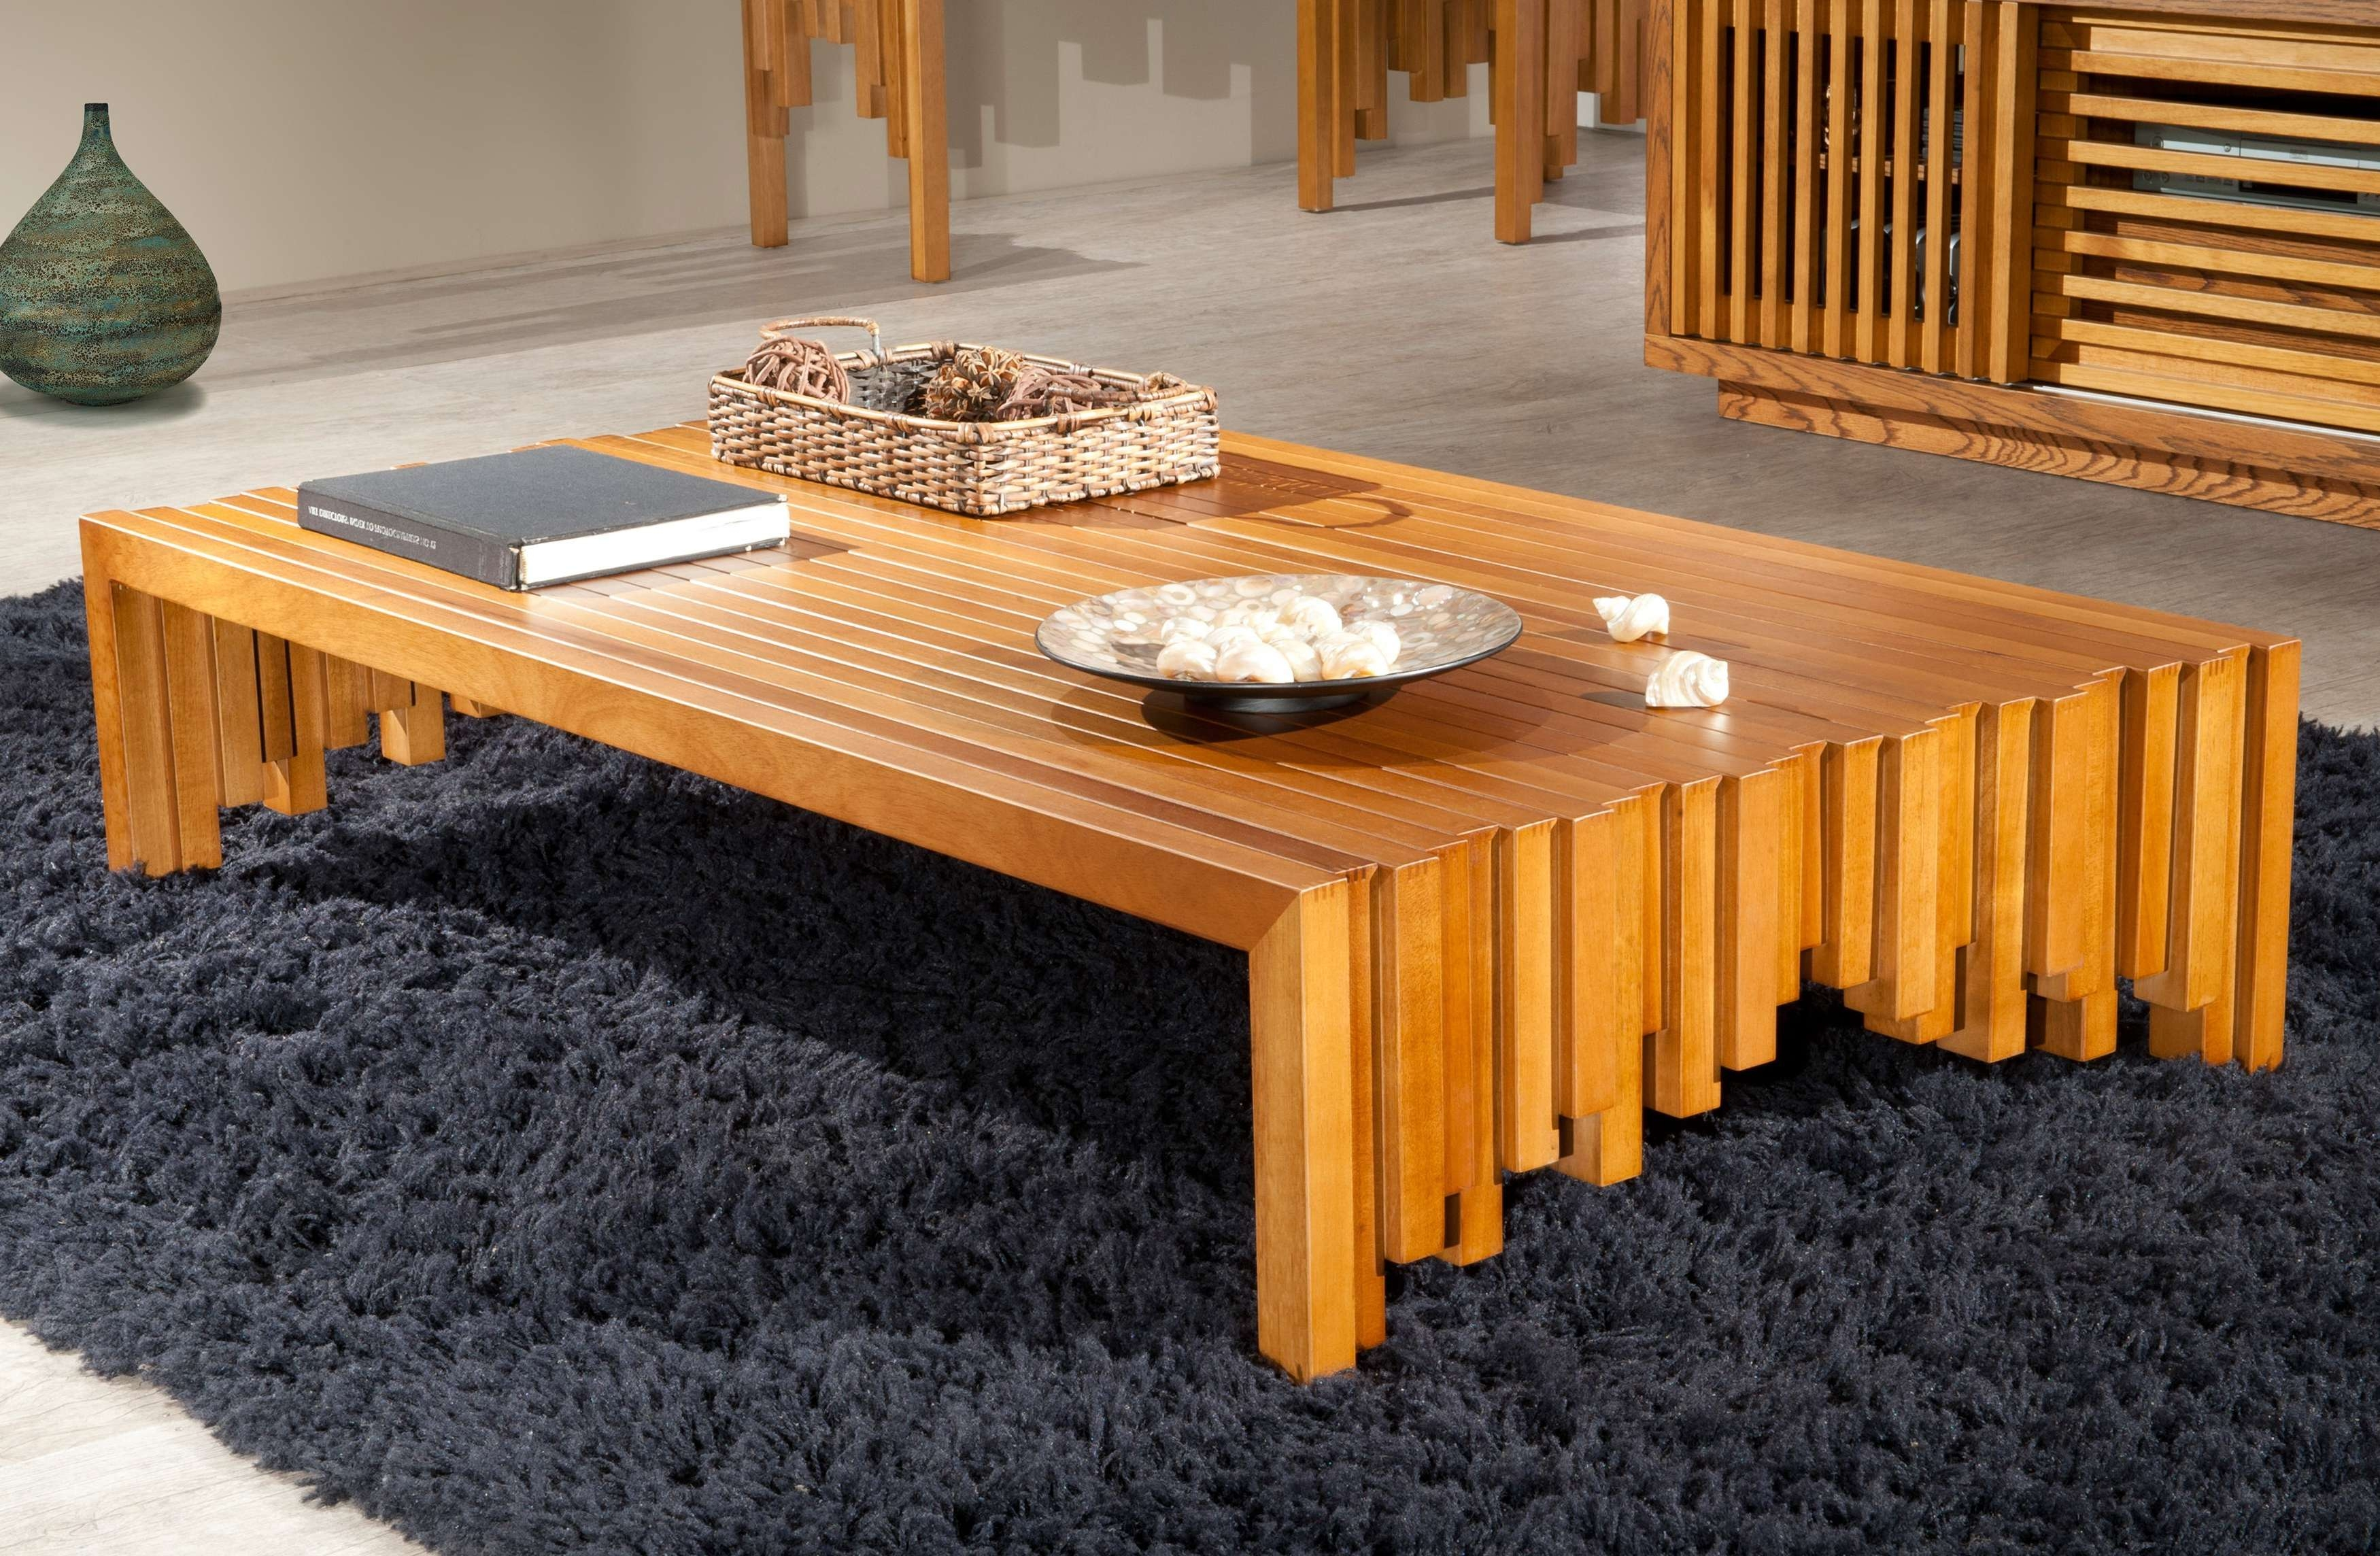 Current Rustic Wooden Coffee Tables With Coffee Tables : Table Rustic Wood Coffee With Metal Legs Modern (View 17 of 20)